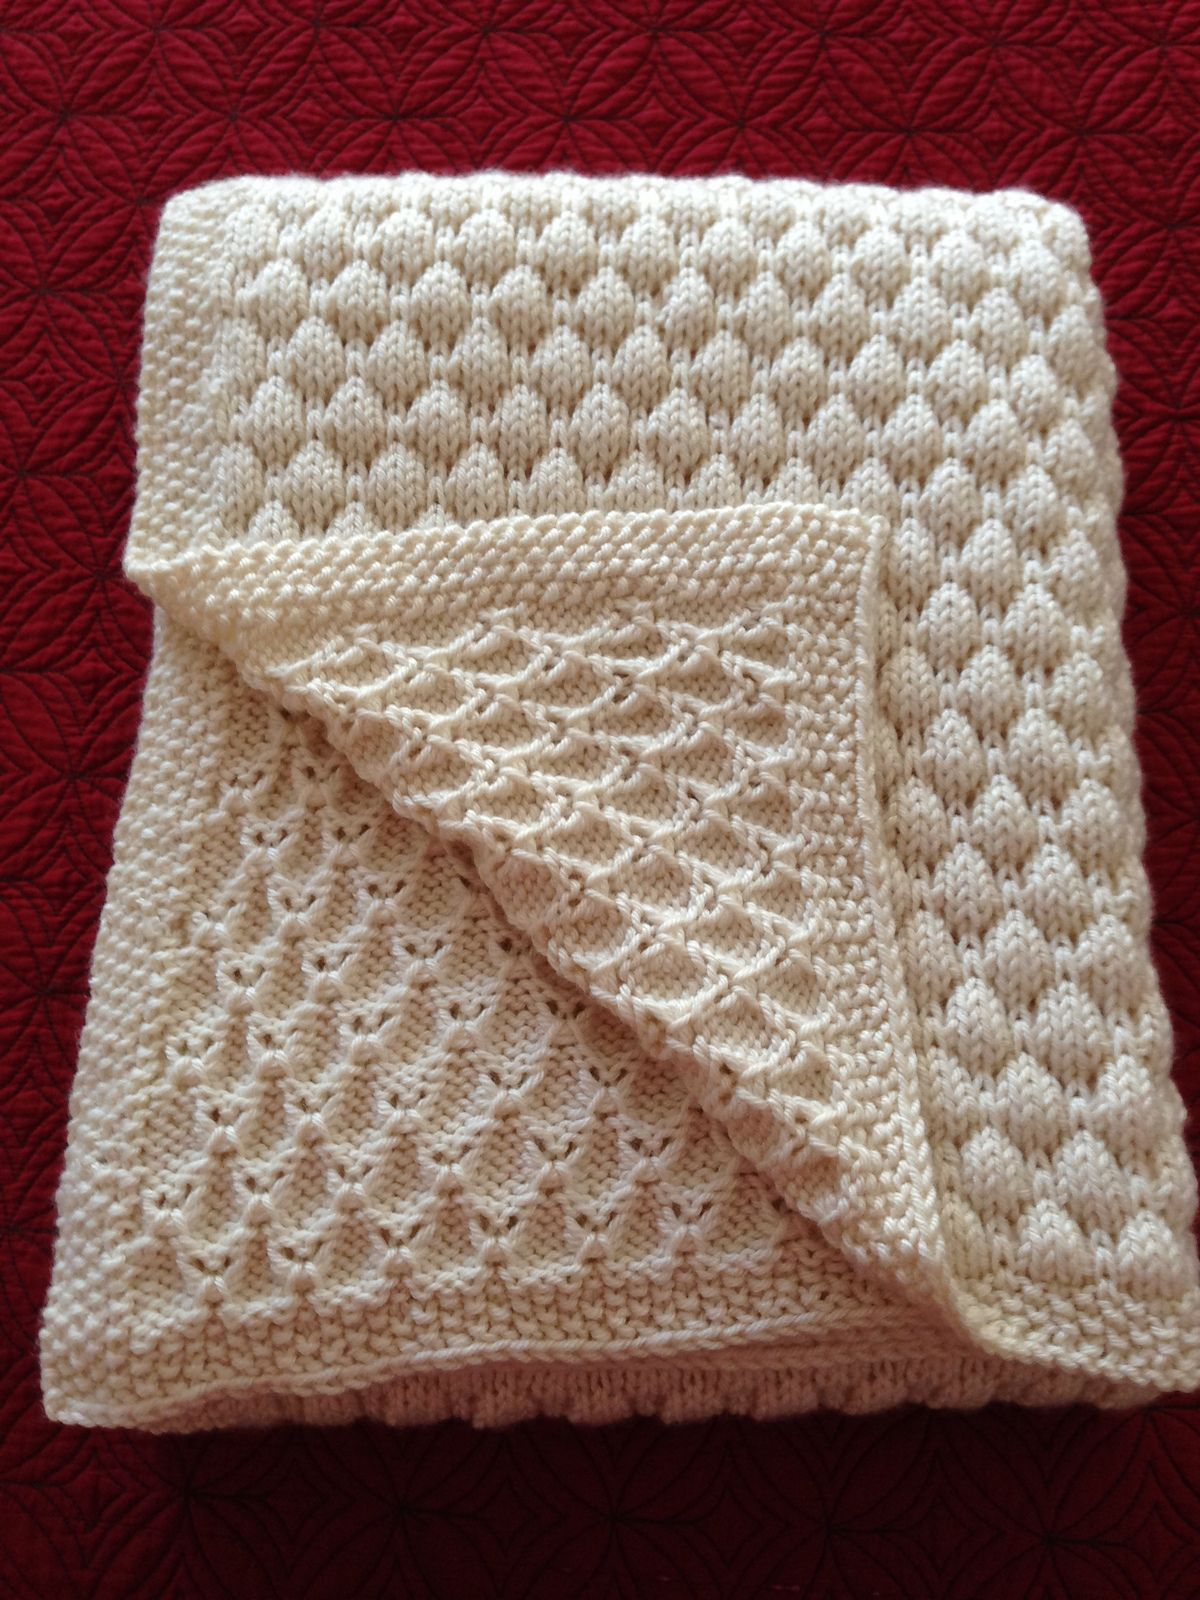 Ravelry: Dean\'s Blanket pattern by Tree Crispin | Knitting ...